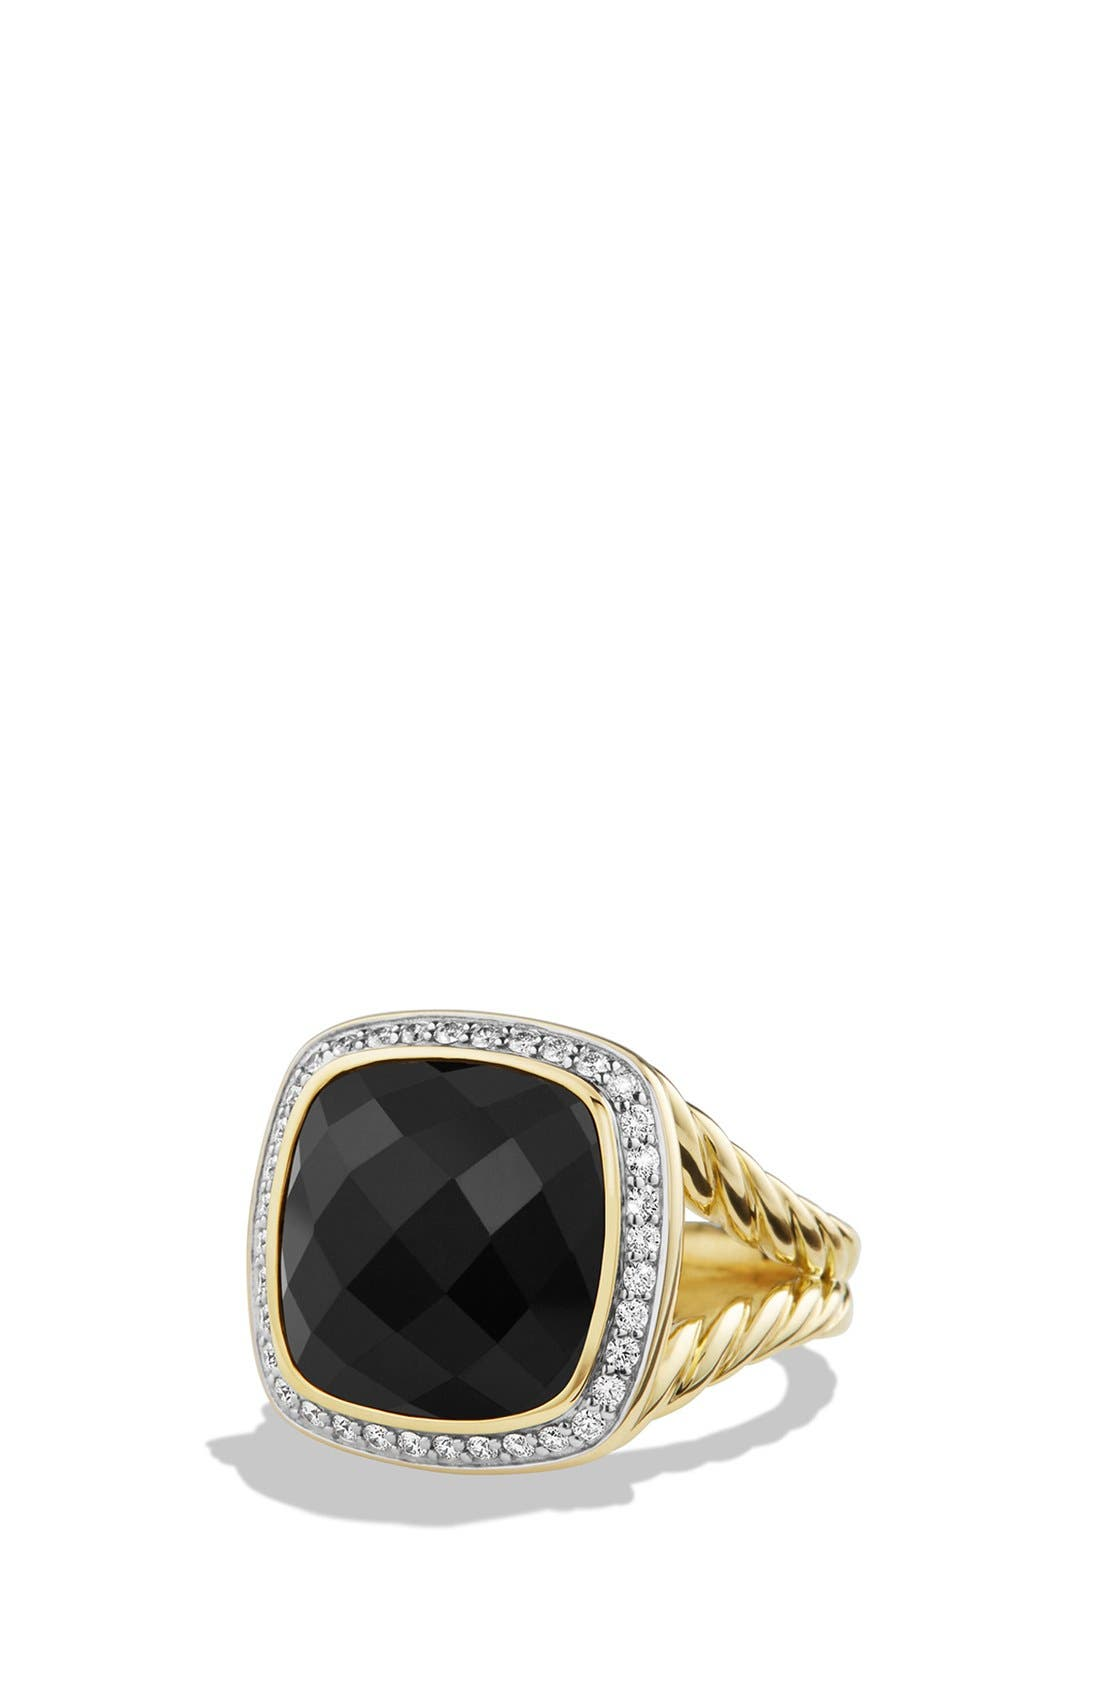 'Albion' Ring with Diamonds in 18k Gold,                             Main thumbnail 1, color,                             BLACK ONYX